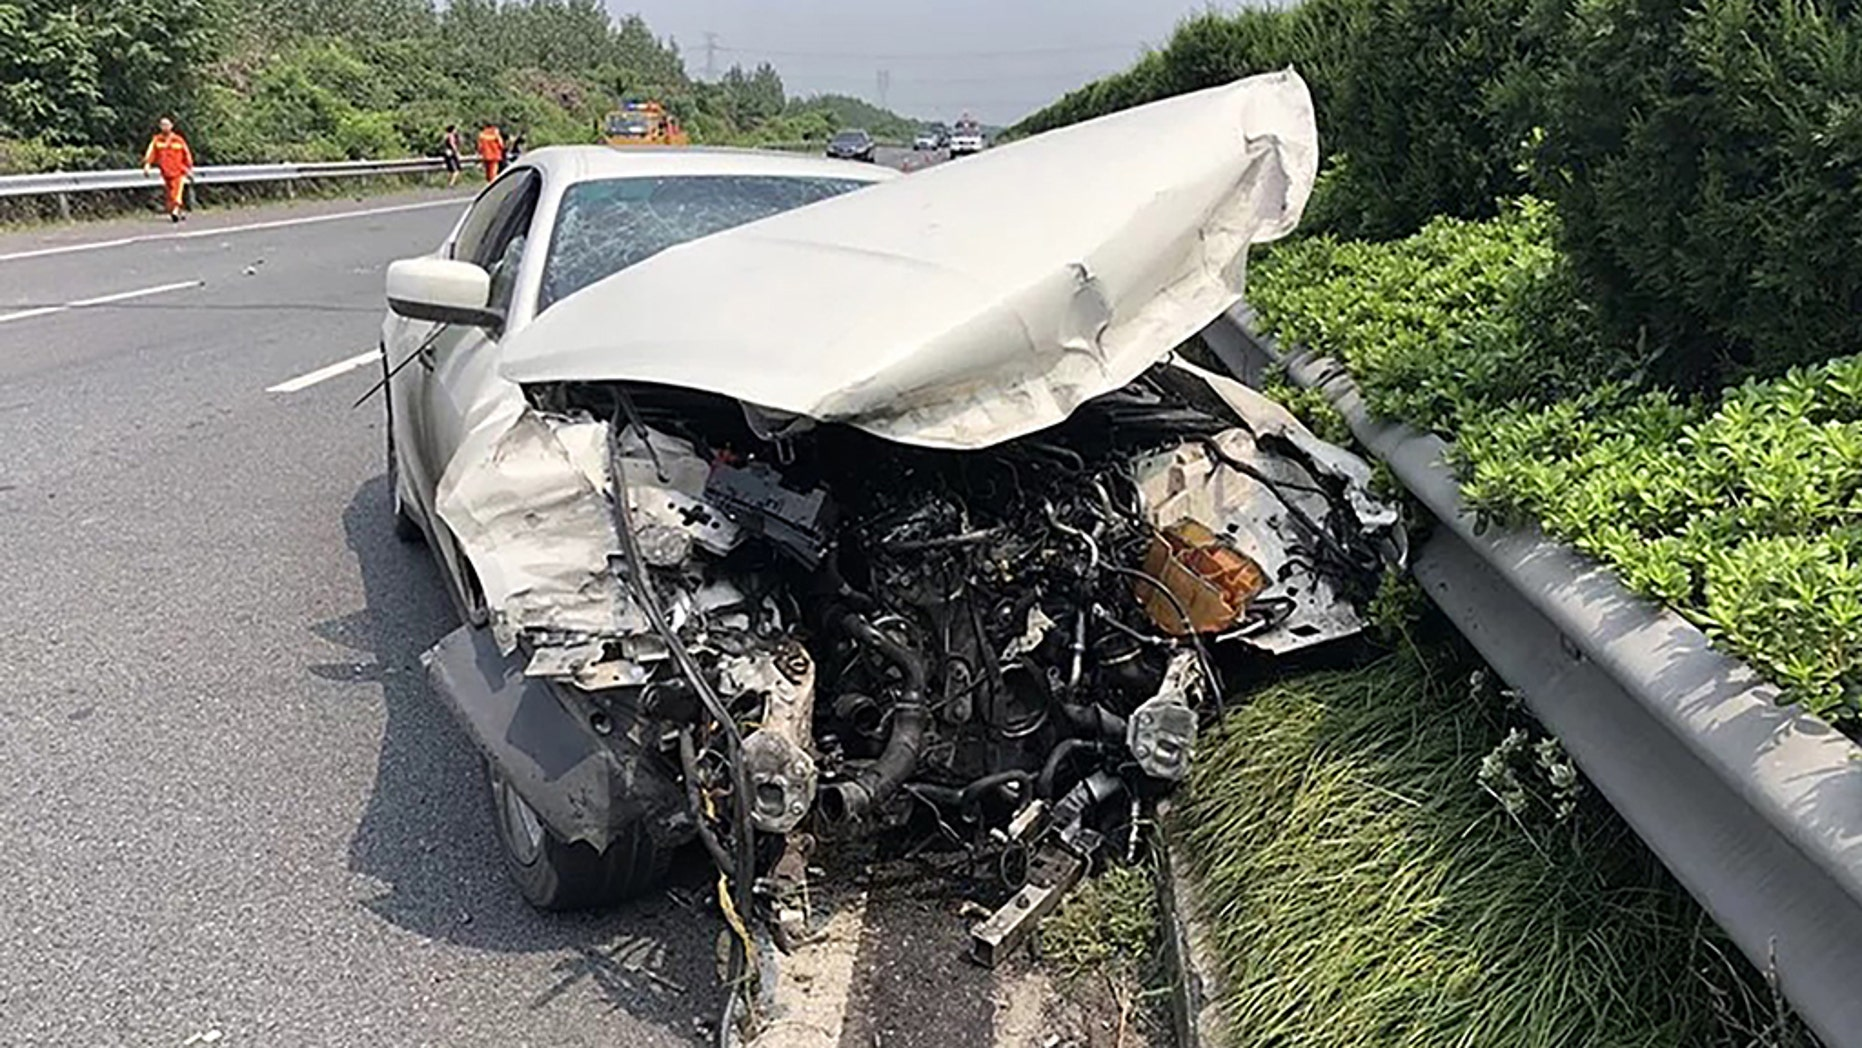 Pic shows: The crashed MaseratiThis is the moment a man writes off a Maserati on a motorway going over 110mph after he borrowed it from a friend.Traffic cameras on the Hangzhou-Pudong Expressway show the driver, surnamed Shi, losing control of the pricey sports car before wrecking it outside of the city of Jiaxing in East China's Zhejiang province.The vehicle, which appears to be a 2016 Maserati Ghibli, was lent to Shi by his friend, who was not present at the time of the accident.CCTV footage shows Shi speeding into view on the largely empty motorway but suddenly veering wildly to the right of the expressway before slamming into the crash barriers.Images show the front and side of the Maserati completely destroyed and the airbags having been deployed.Jiaxing traffic police said several dozen feet of the crash barrier were also damaged during the accident, which fortunately involved no other cars.The authorities said they immediately tracked down Shi's contact information and asked him as well as his two passengers to seek shelter by the roadside in order to avoid a secondary accident.Shi admitted to investigators that he had been speeding at the time of the crash, going up to 180 kph (111 mph) in a 120-kph (75-mph) zone.Jiaxing police said they had no reason to doubt Shi's speeding claims, but they would confirm following an independent investigation.Shi and his two passengers survived without serious injury thanks to their seat belts, reports said.It has since been revealed that the owner of the car paid over 1 million RMB (112,651 GBP) for the Maserati after tax.The car's insurer is not expected to pay out in full due to the unlawful cause of the accident, the police said.